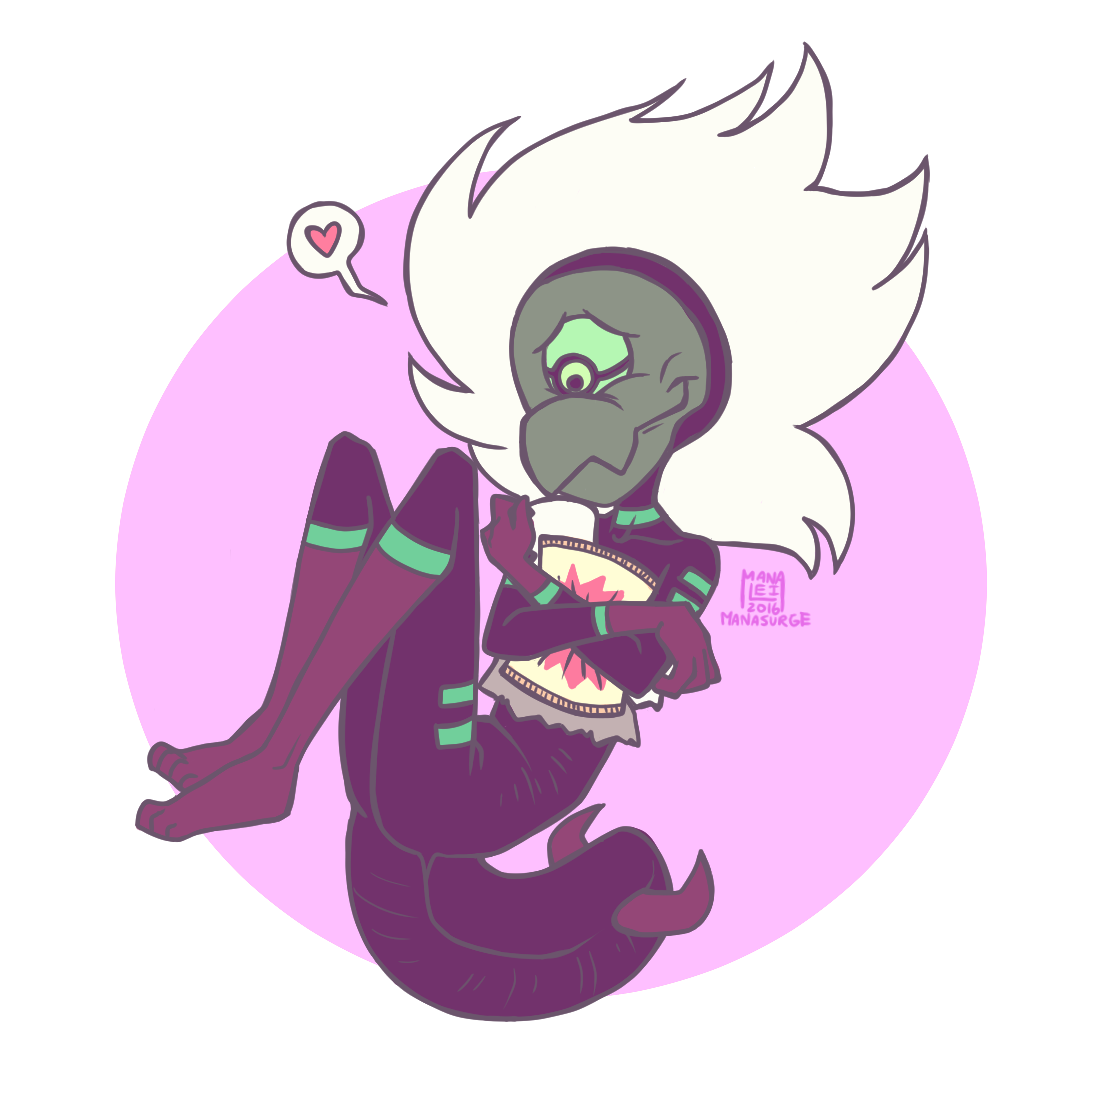 Some soft Centipeedle, letting you know to hold onto the good things in life, even if they are small. (A lesson I'm trying to keep telling to myself too, despite all the bad things that keep...